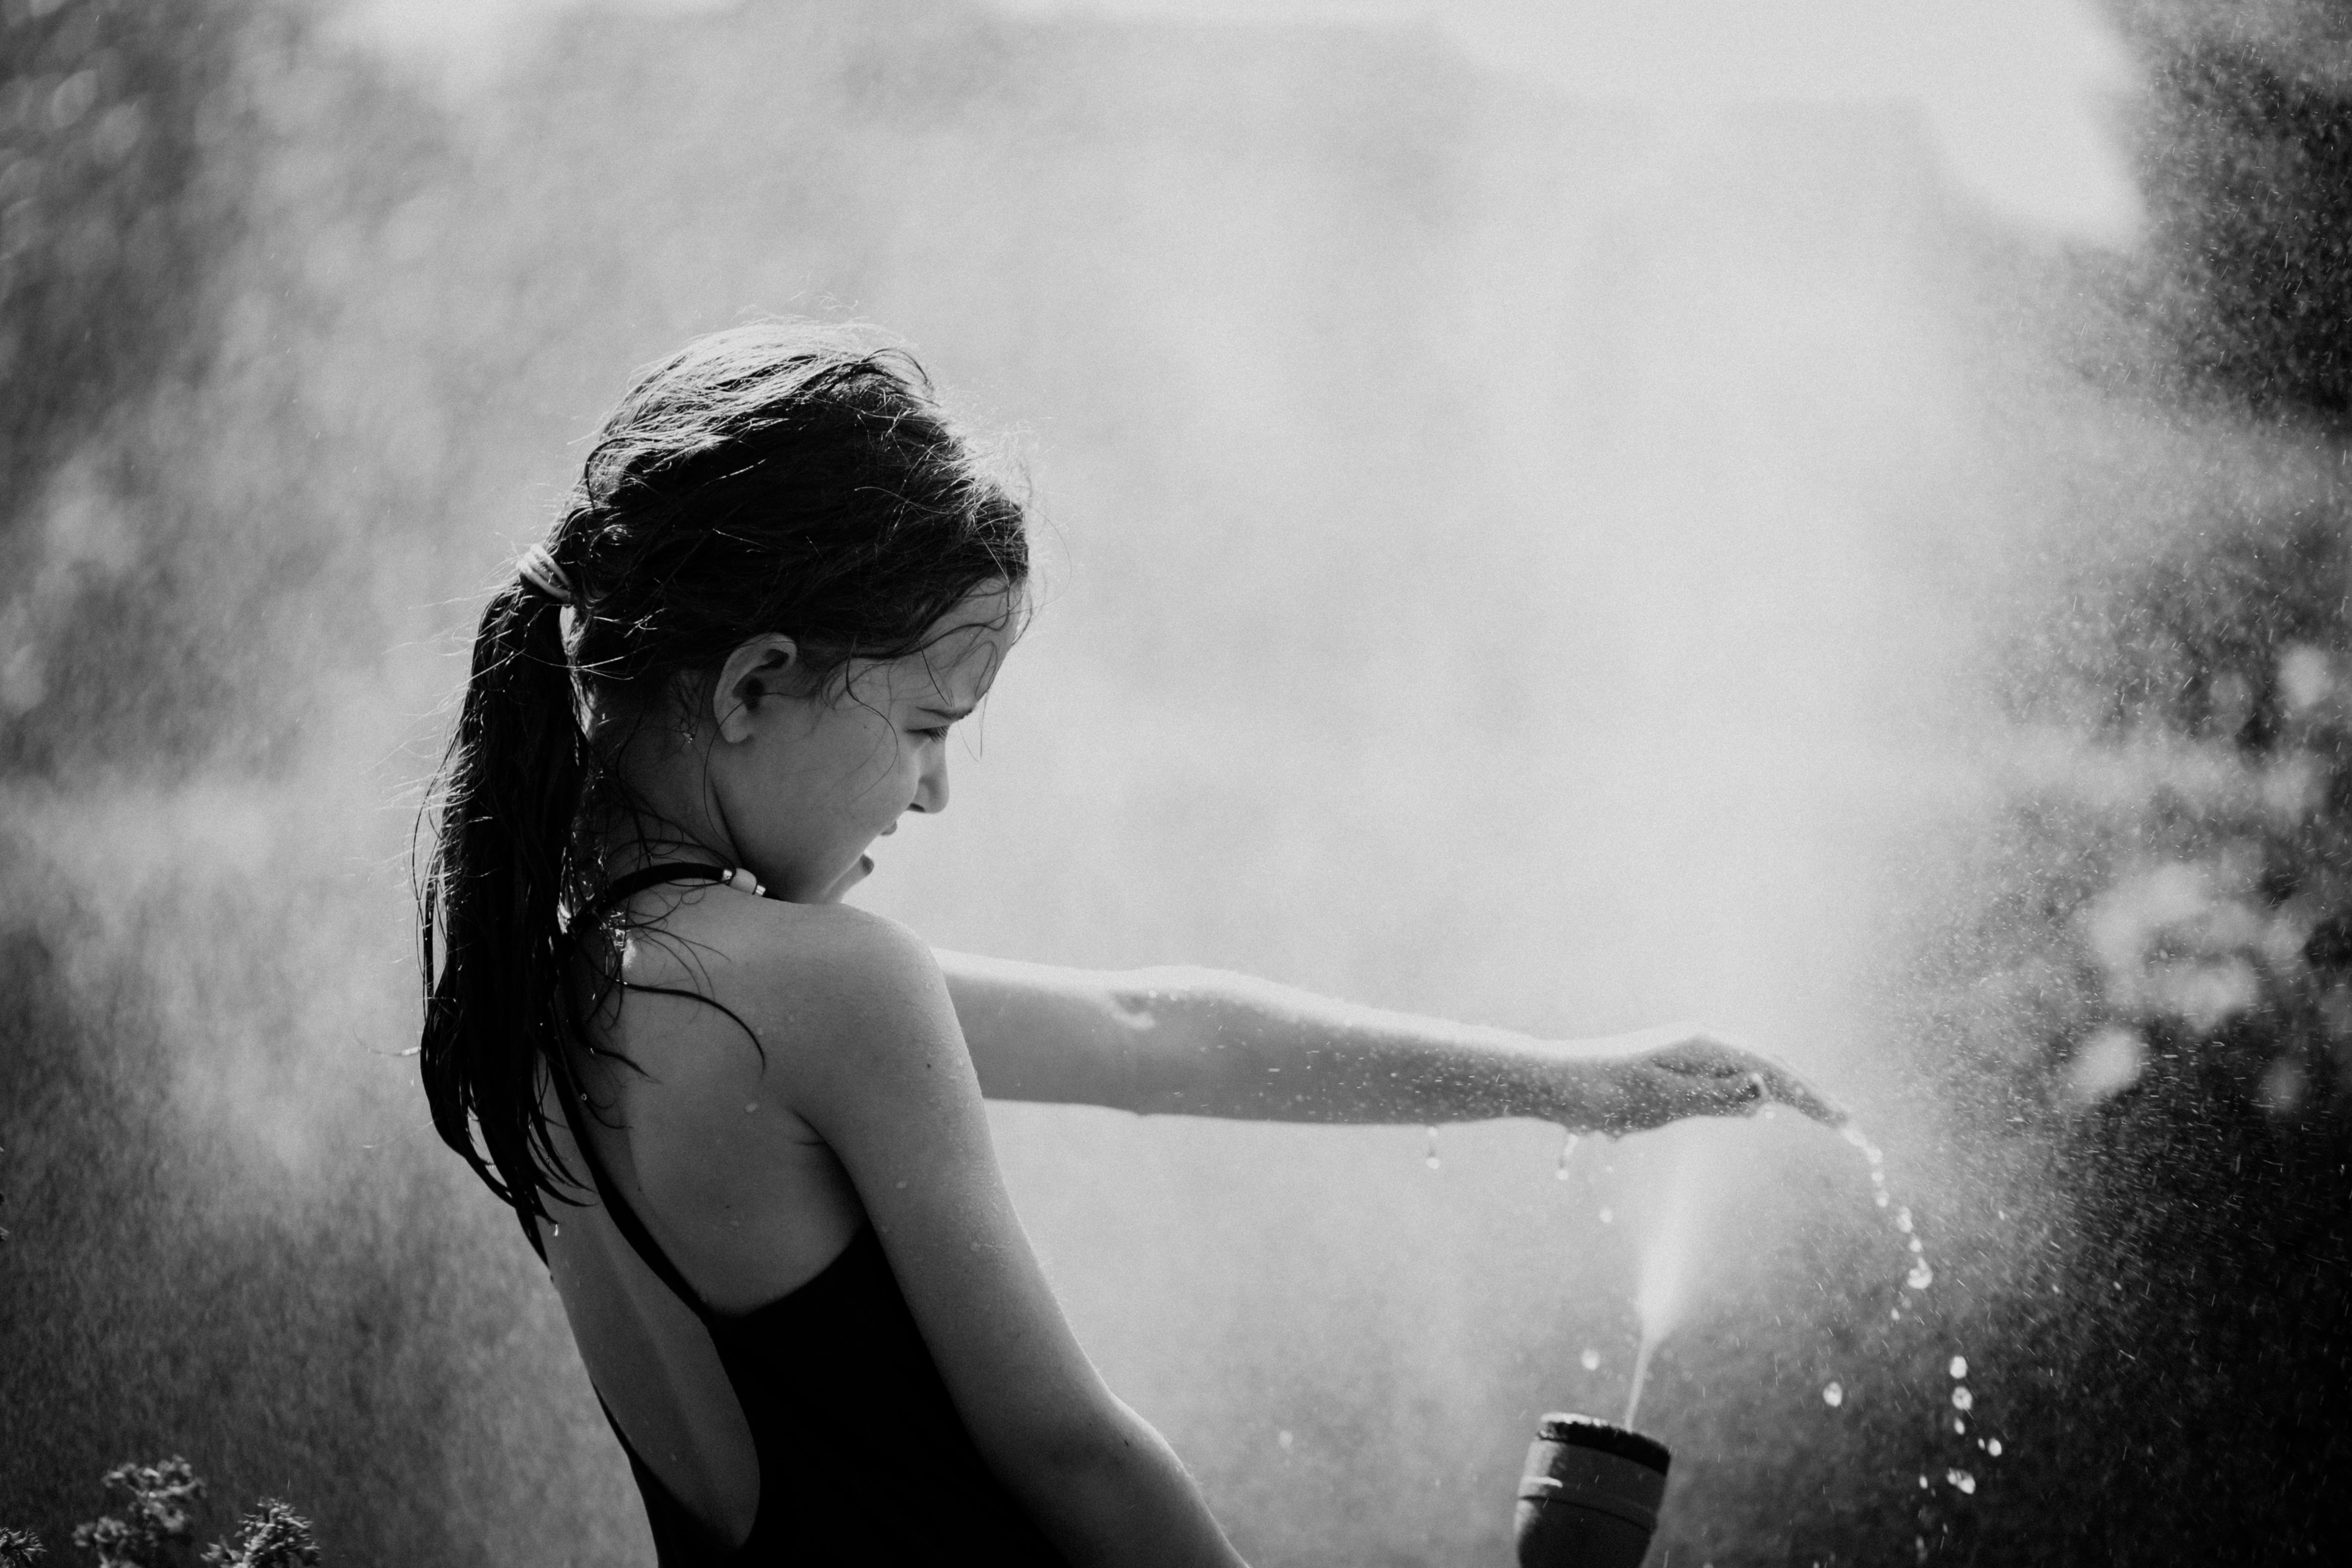 grayscale photography of girl playing water